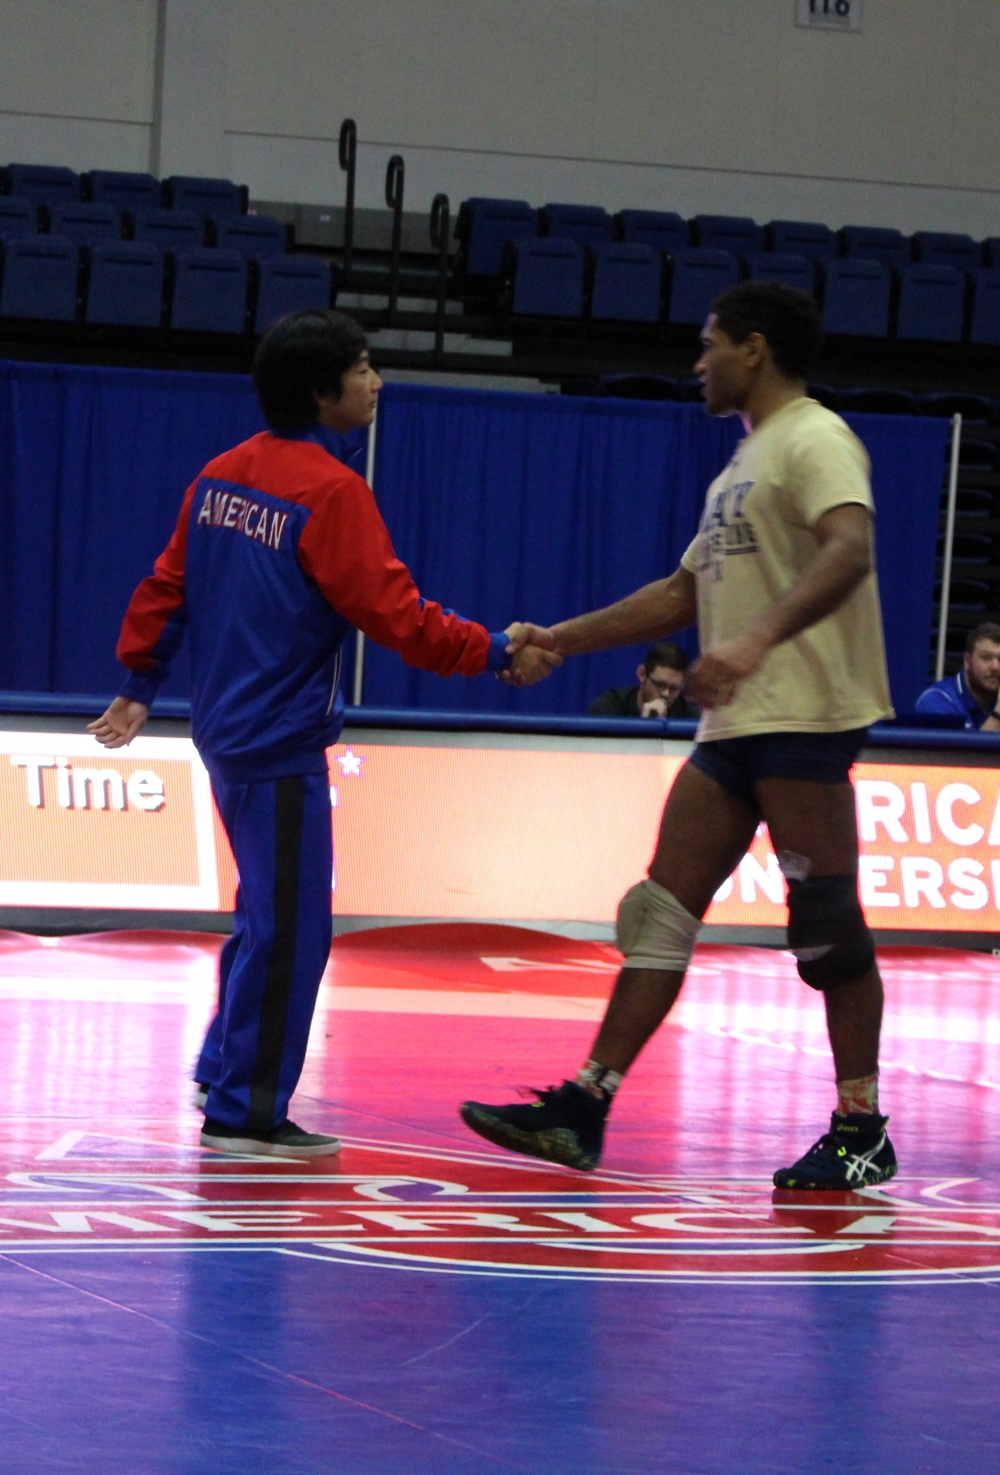 AU wrestling drops 21-17 to Navy